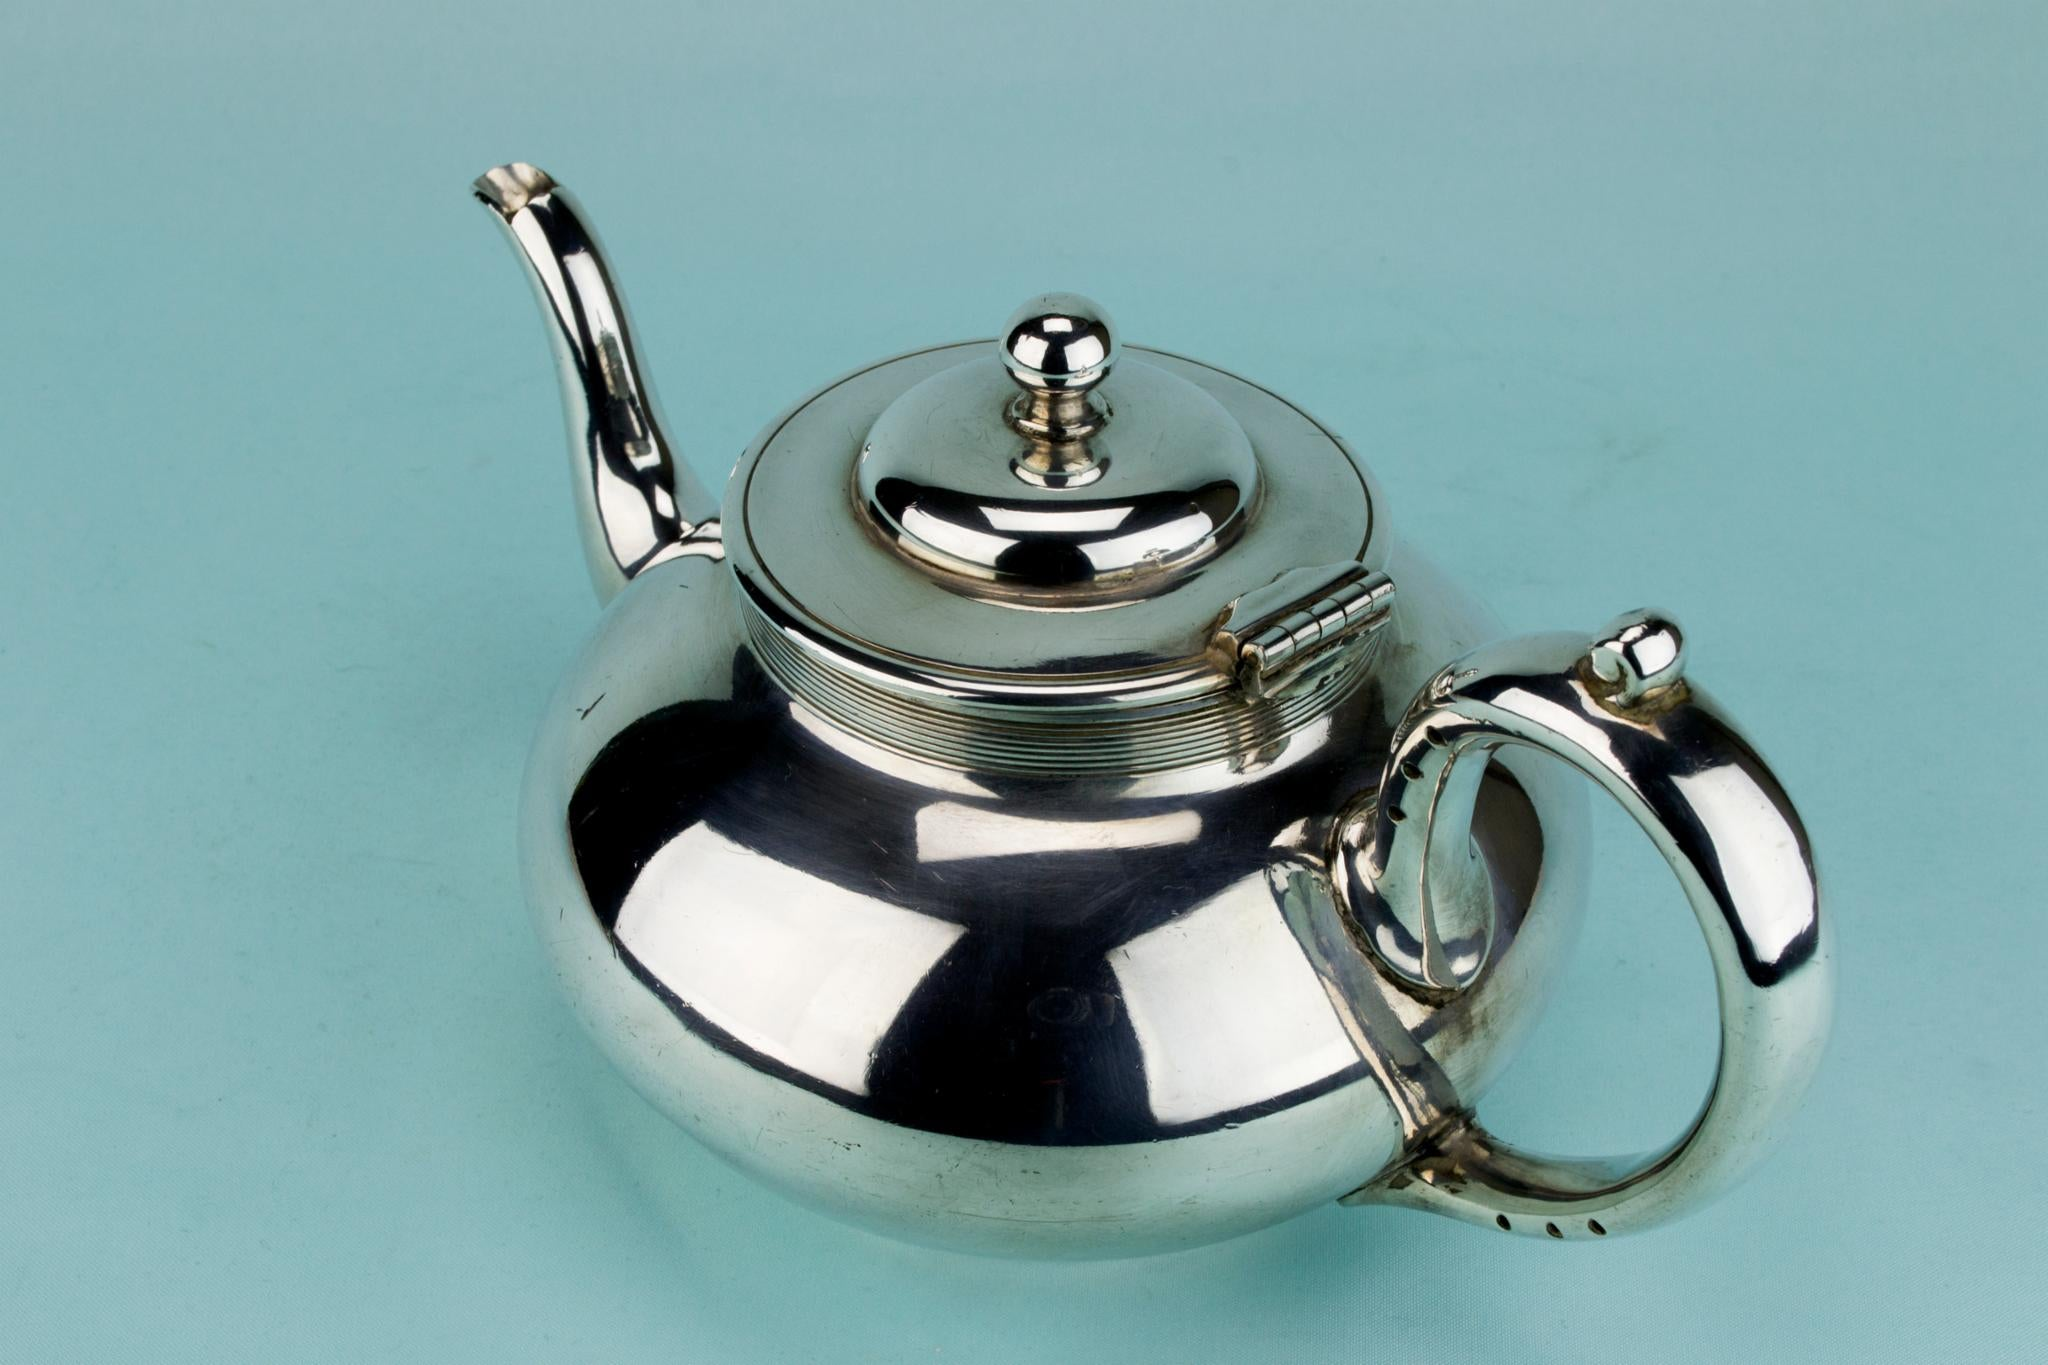 Tea and Coffee Set Silver Plated, English Circa 1900